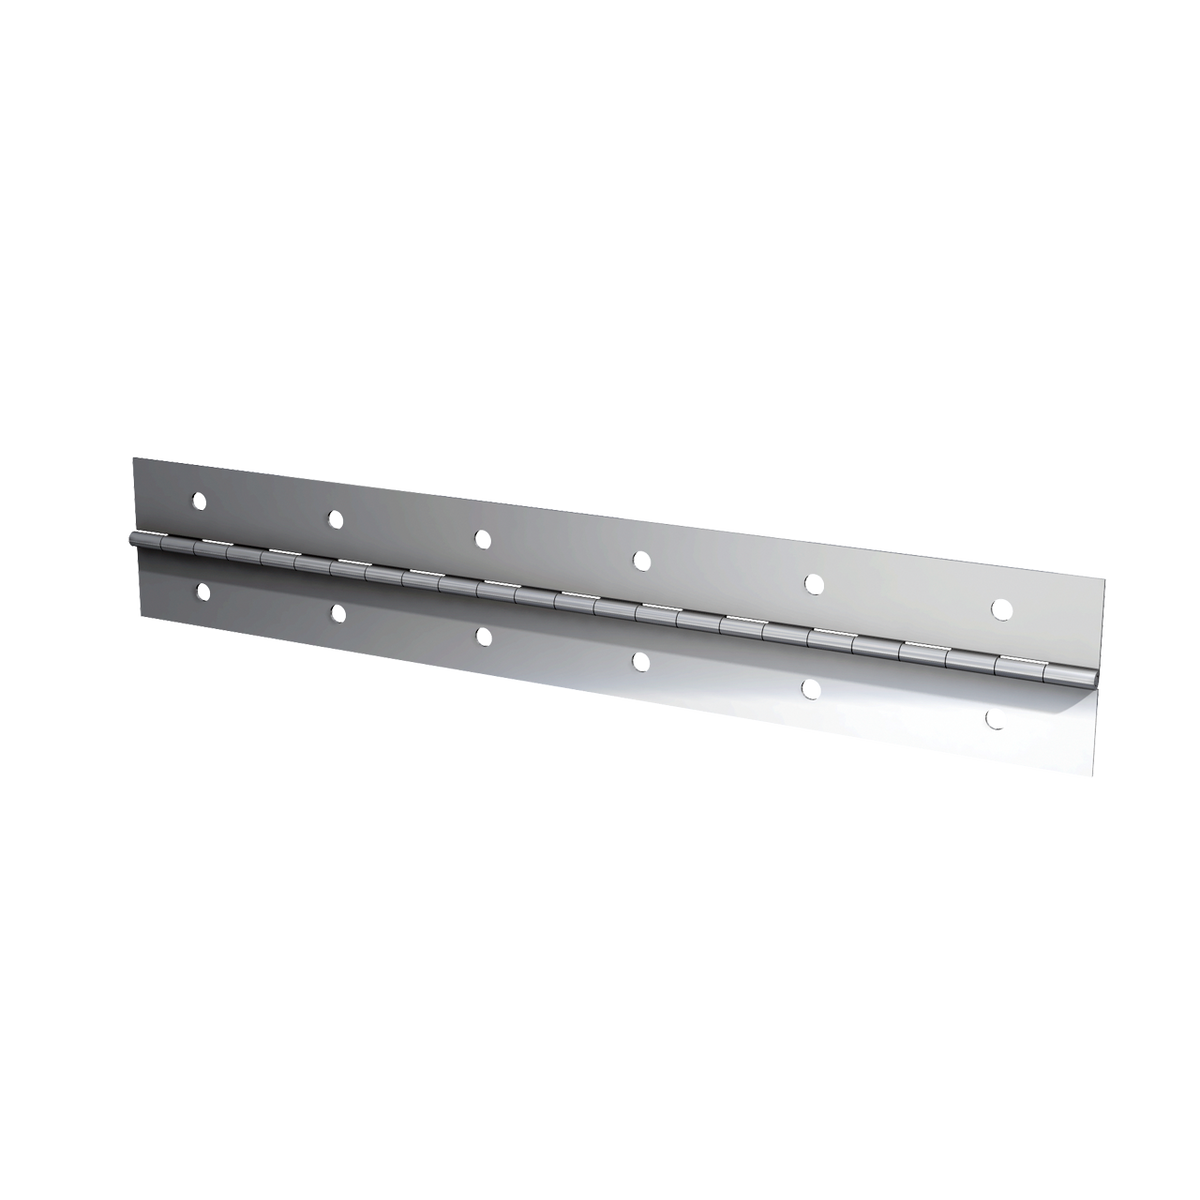 "Steel Continuous Hinge - 0.04"" x 2.0"" x 72"" with Nickel Plate & Mounting Holes"